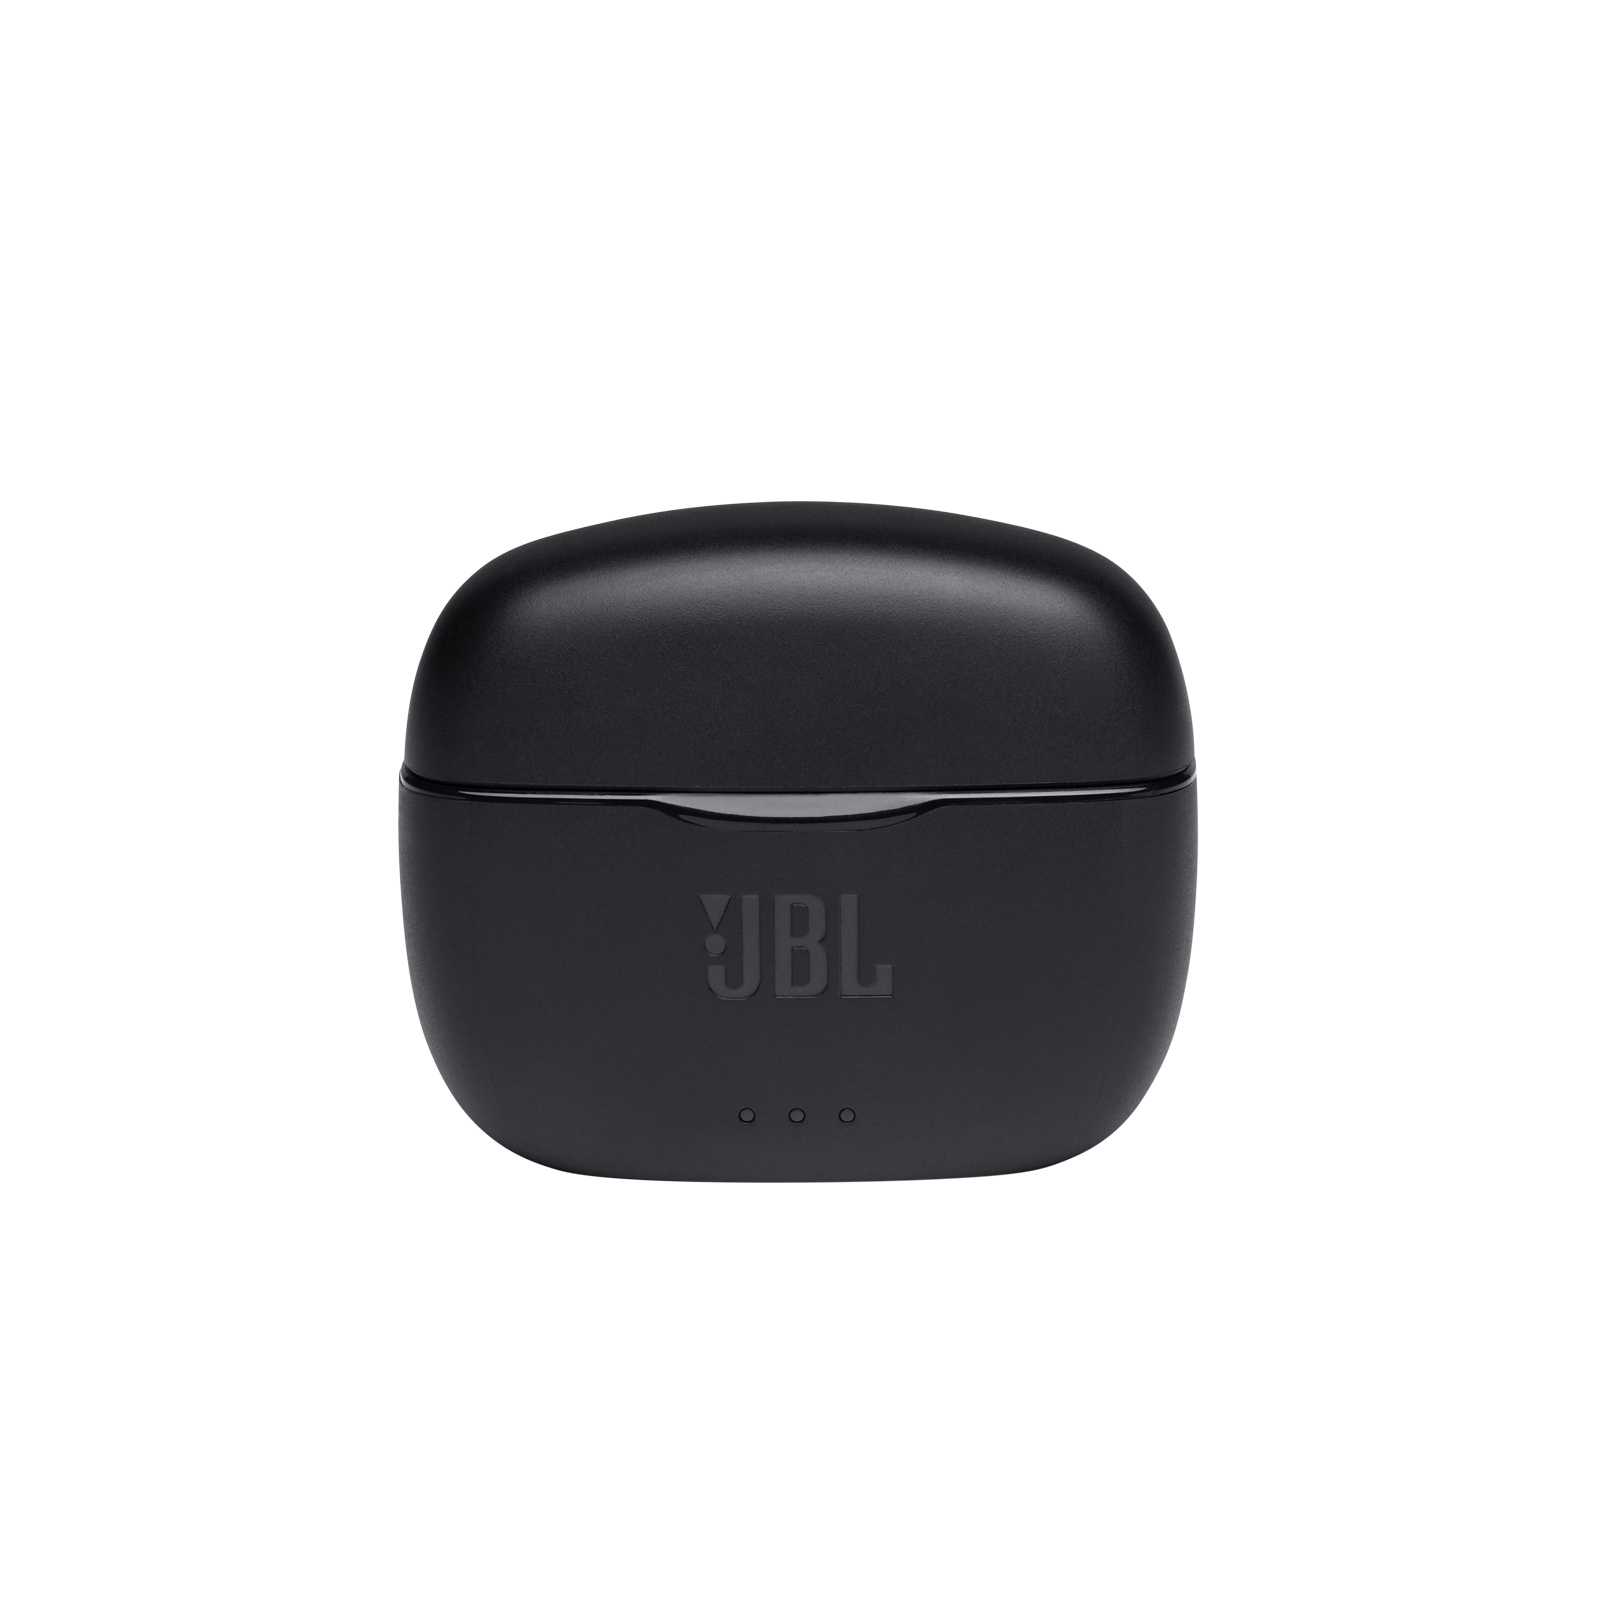 JBL Tune 215TWS - Black - True wireless earbuds - Detailshot 5